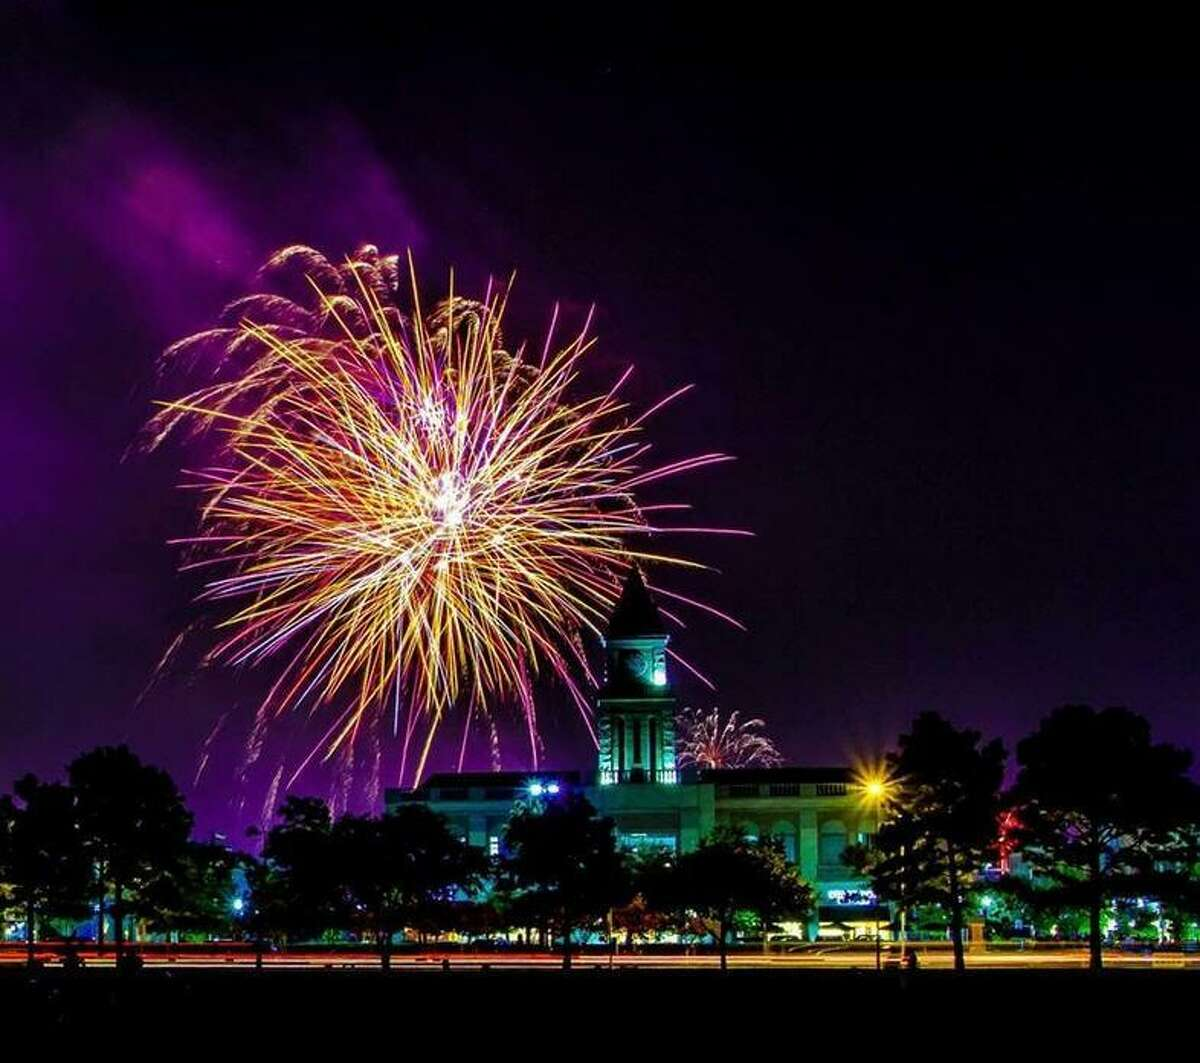 Fireworks will conclude the Fourth of July celebration at LaCenterra at Cinco Ranch about 9:15 p.m.